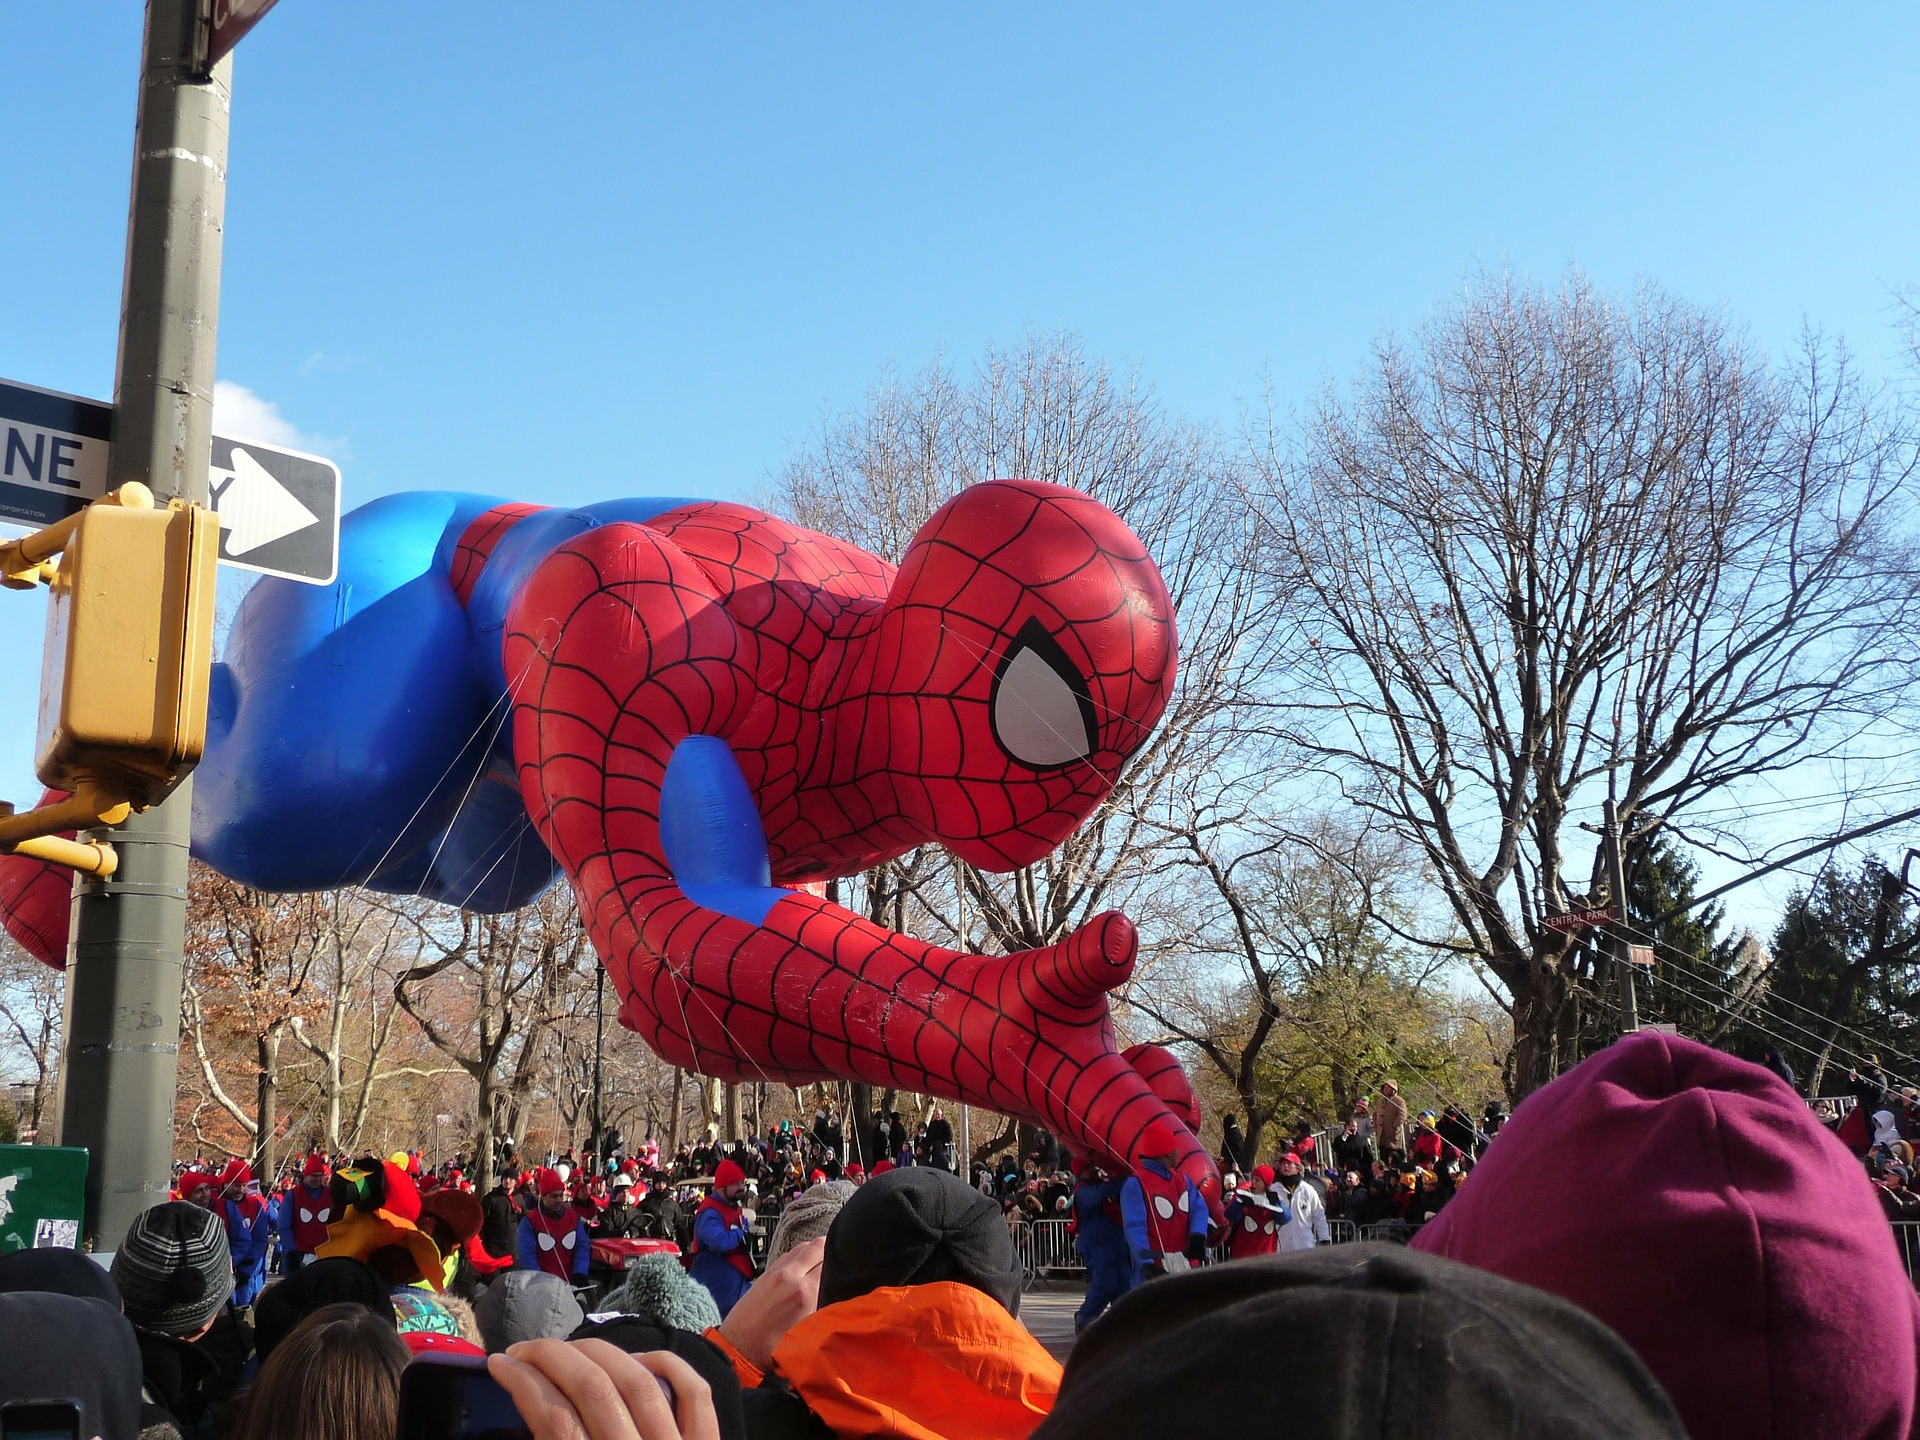 Giant Spider Man Balloon Float, Macy's Thanksgiving Day Parade, NYC